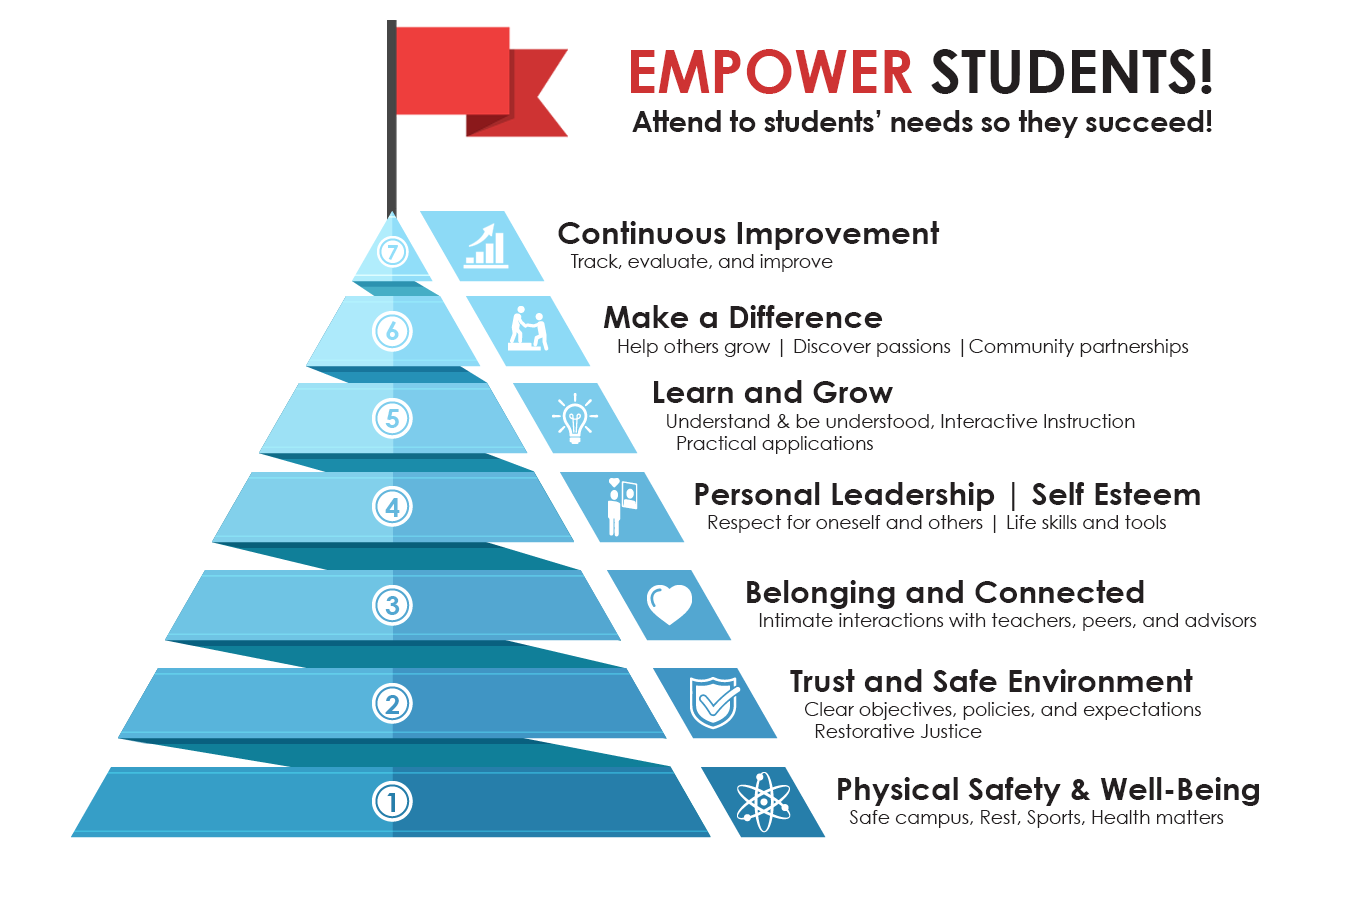 empower-students